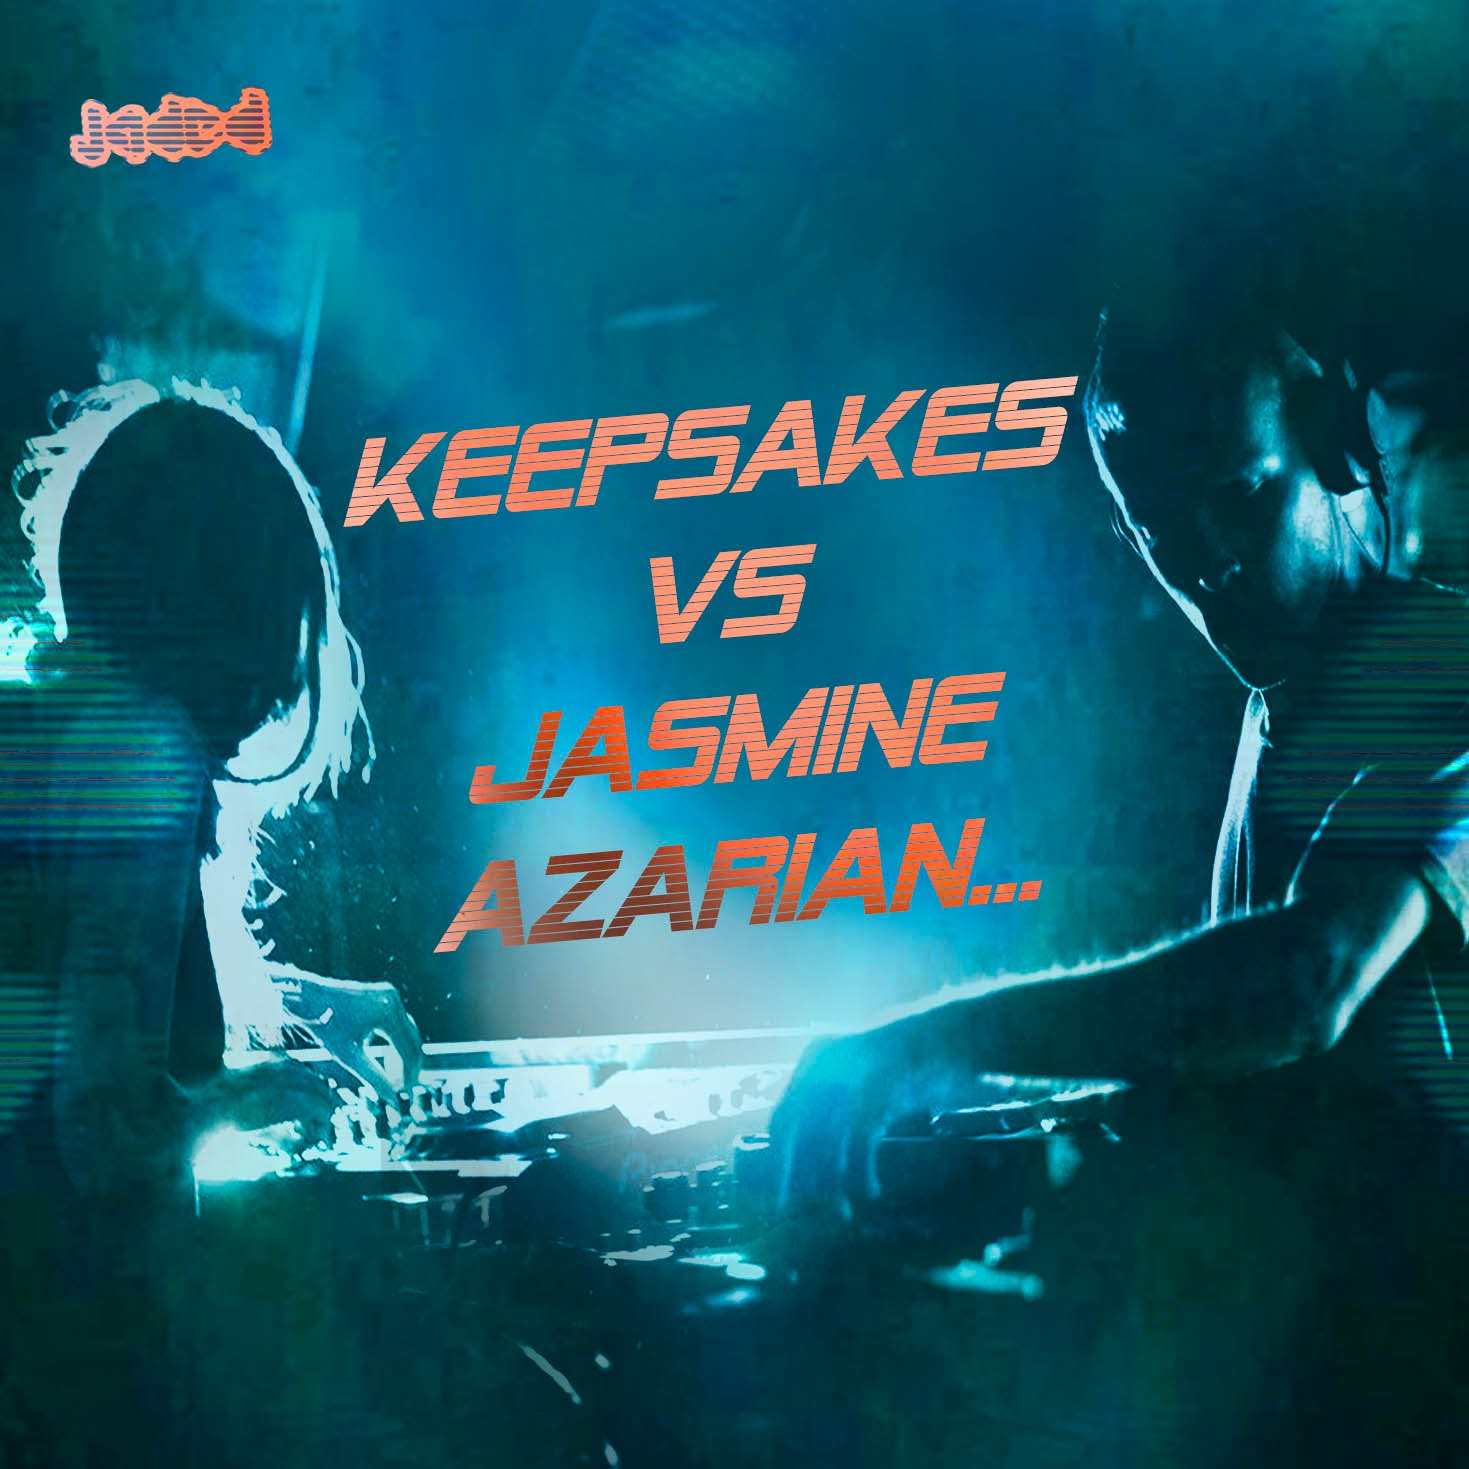 Choose your weapons: Keepsakes vs Jasmine Azarian